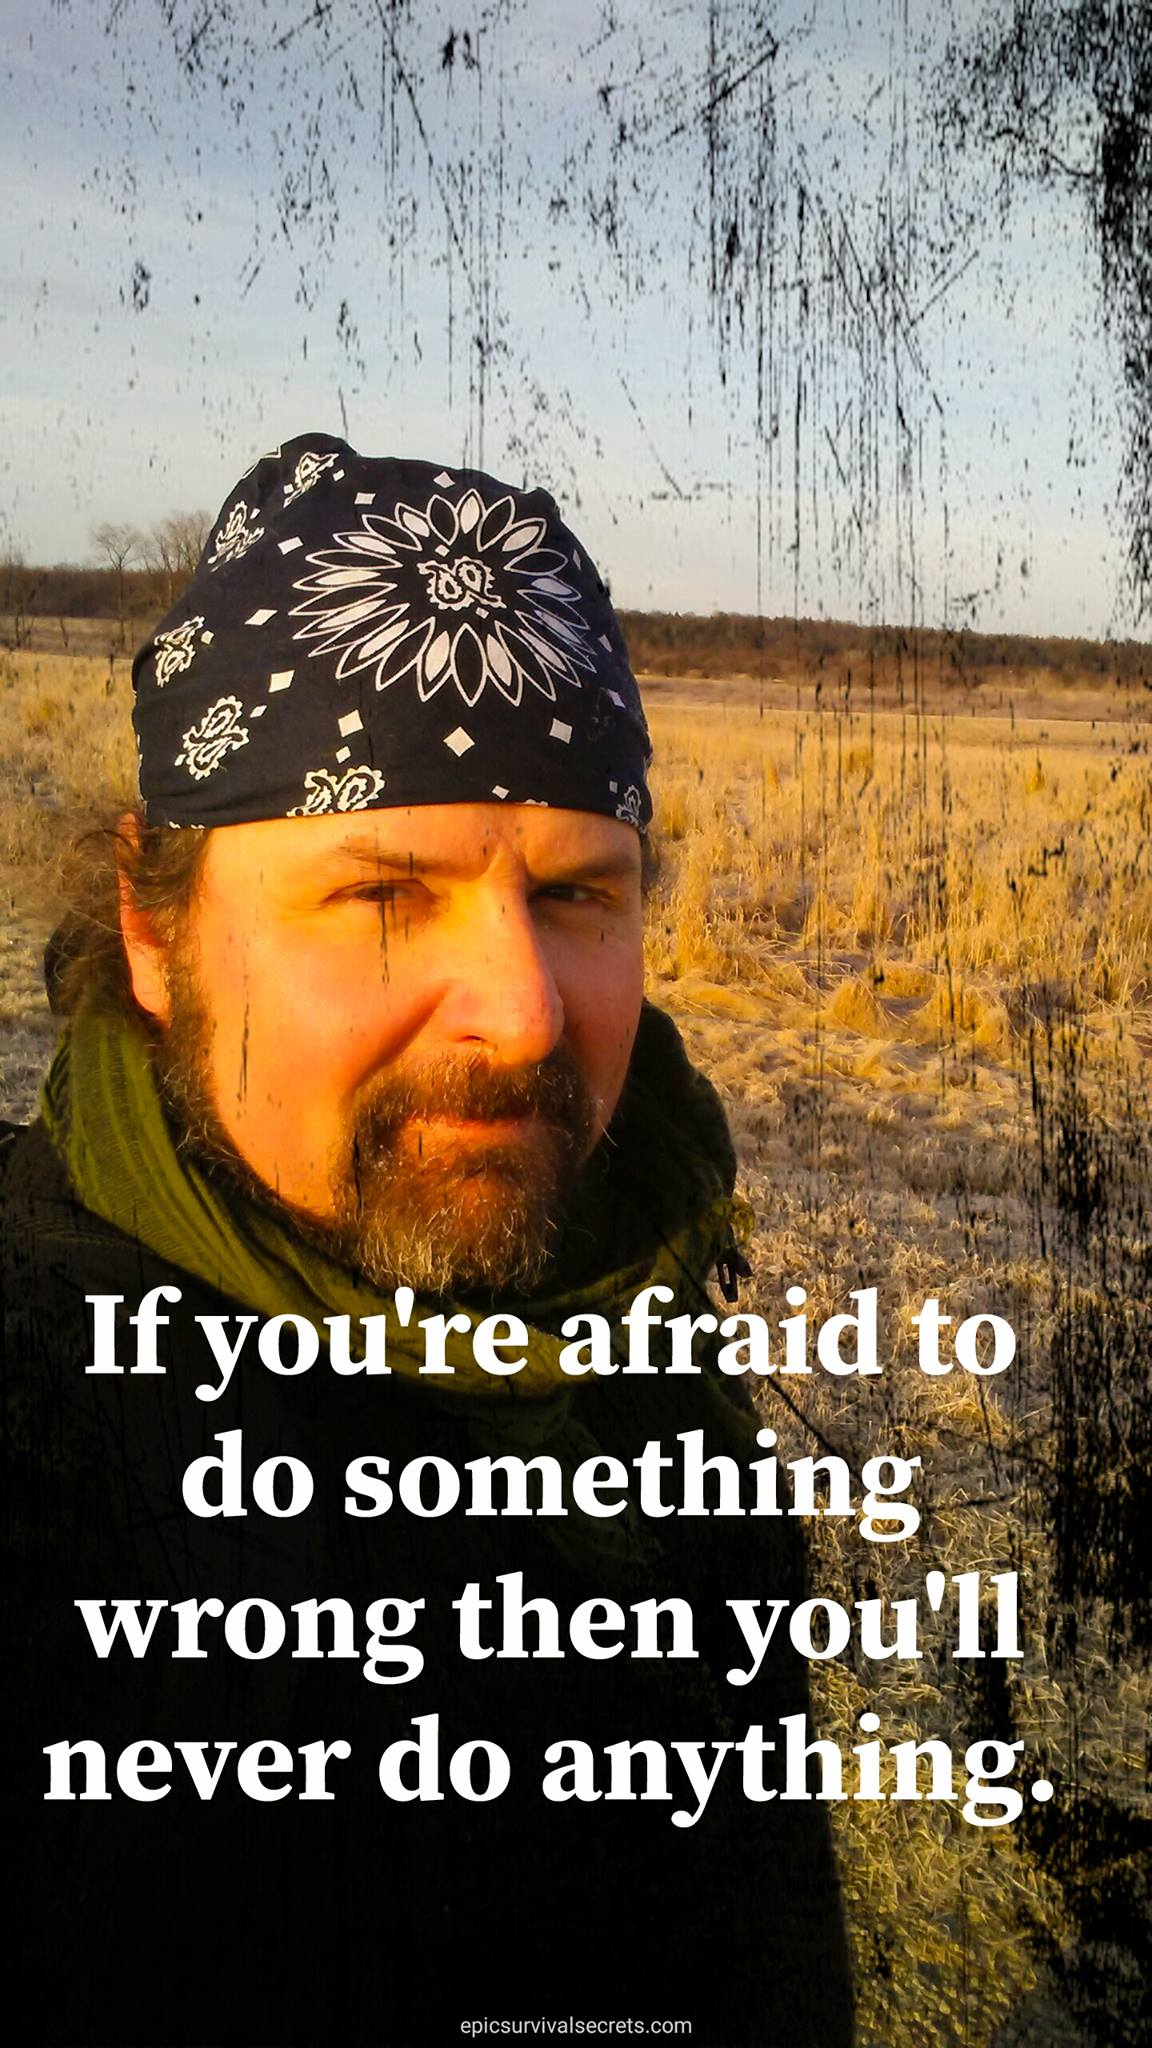 if your afraid to do something wrong then you'll never do anything